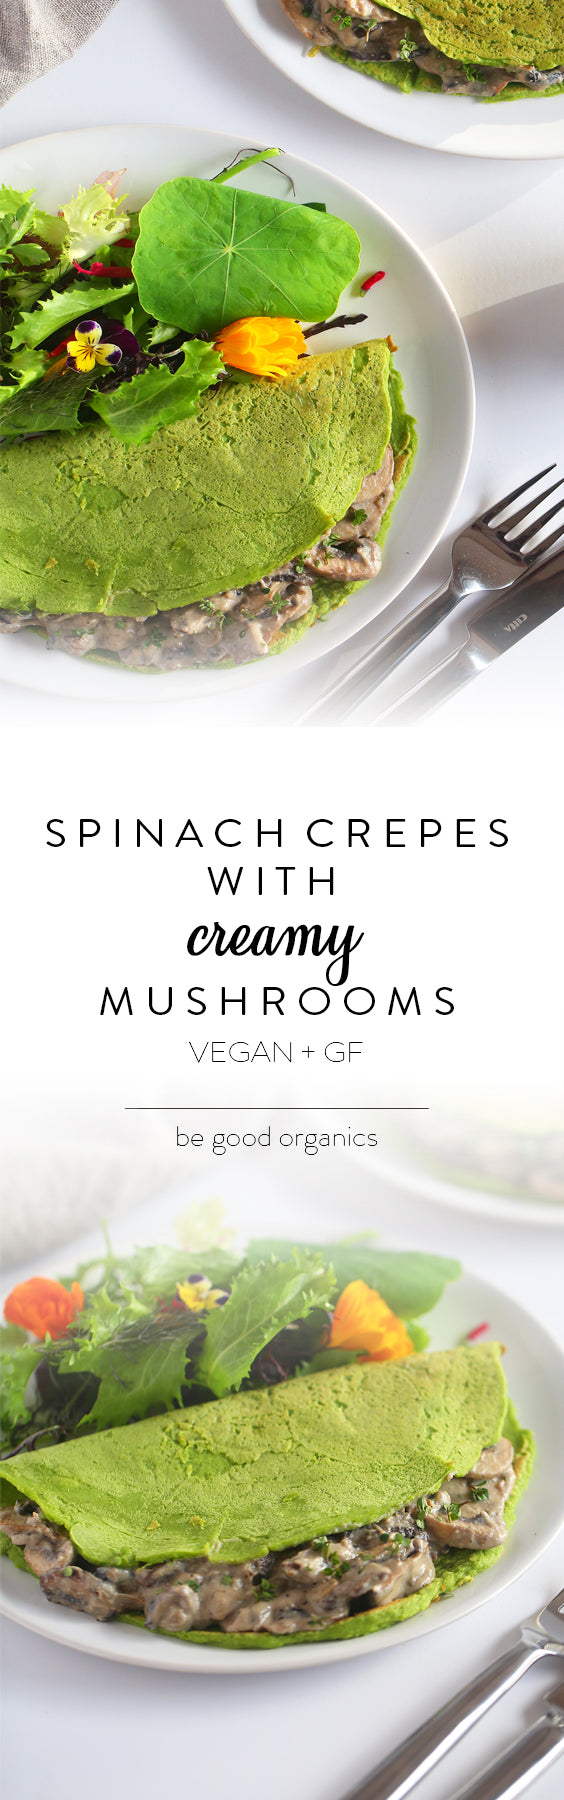 Spinach Crepes with Creamy Mushrooms - Be Good Organics